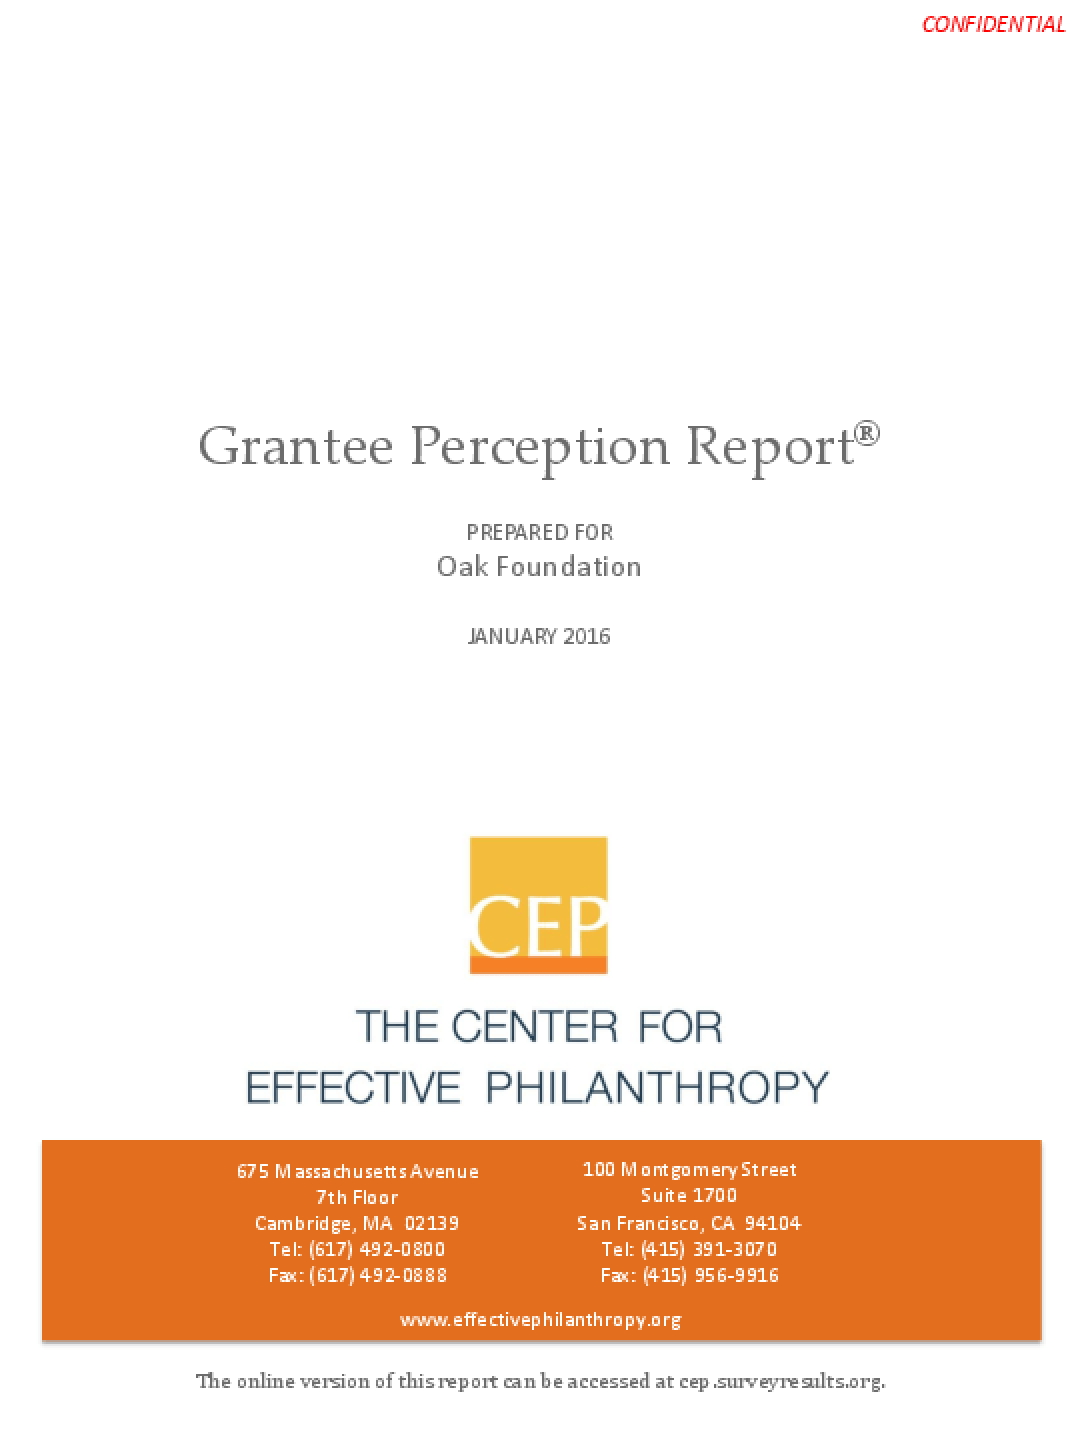 Grantee Perception Report January 2016: Prepared for the Oak Foundation